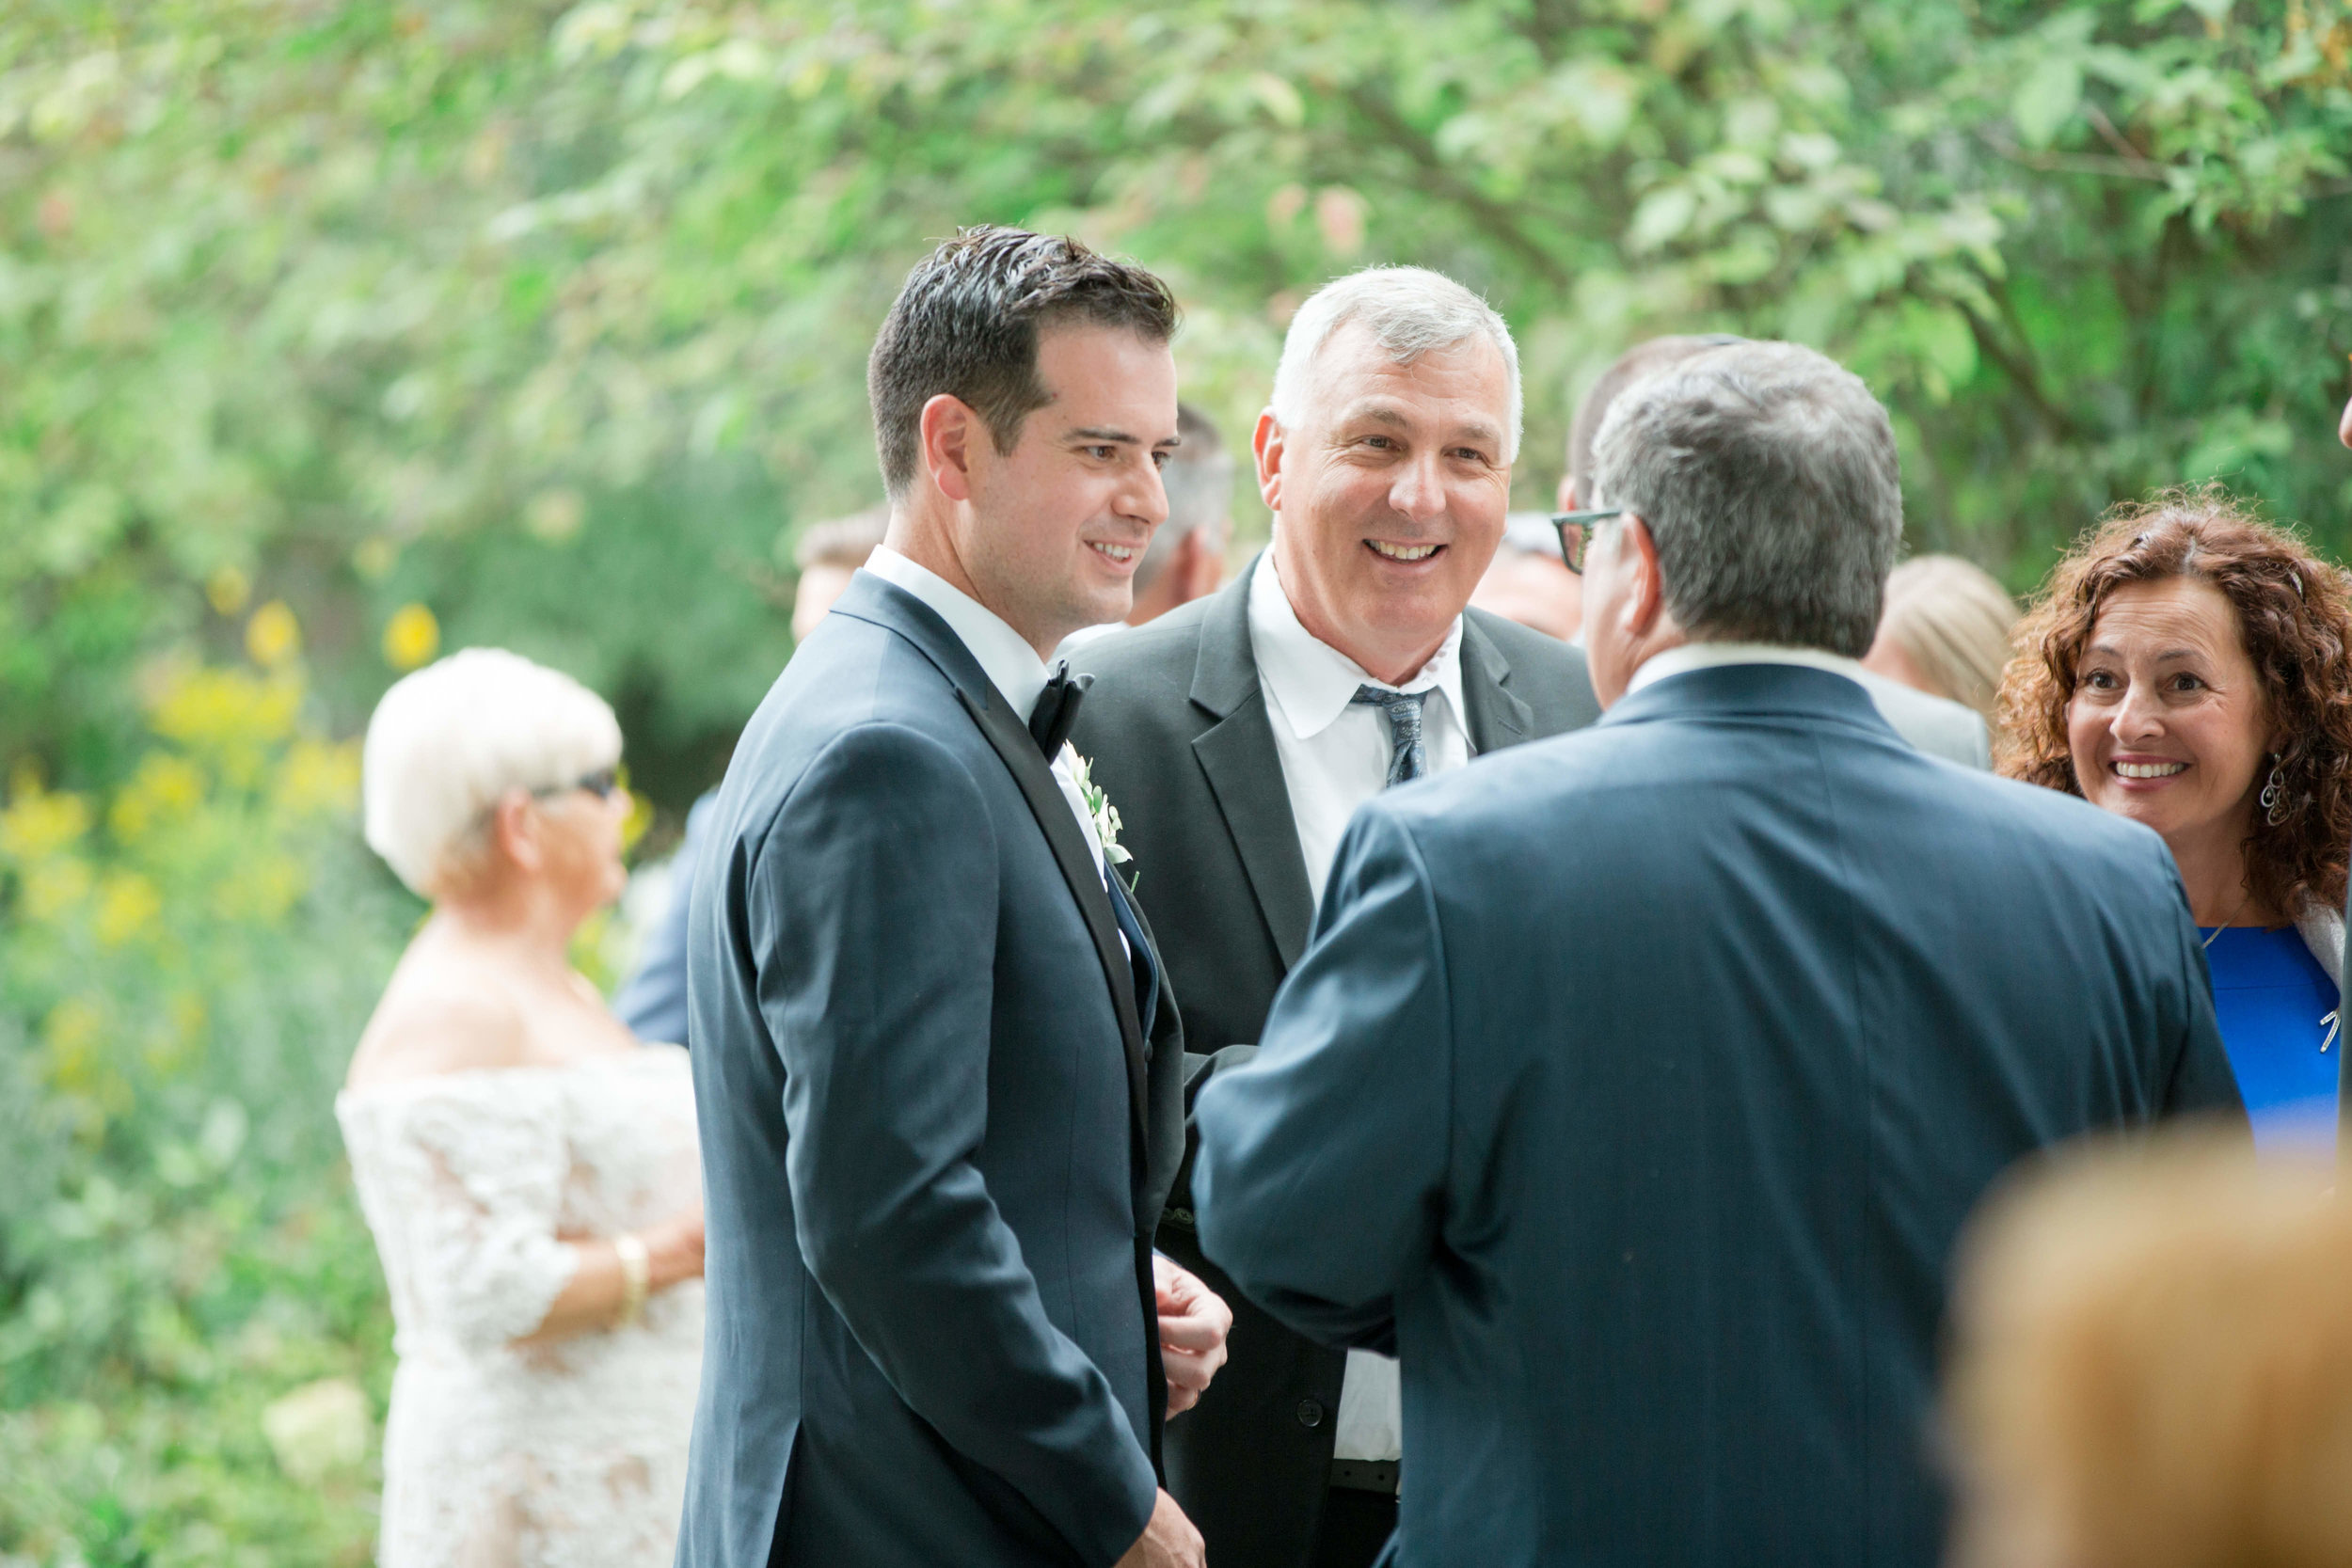 Ashley___Zac___Daniel_Ricci_Weddings___High_Res._Finals_453.jpg